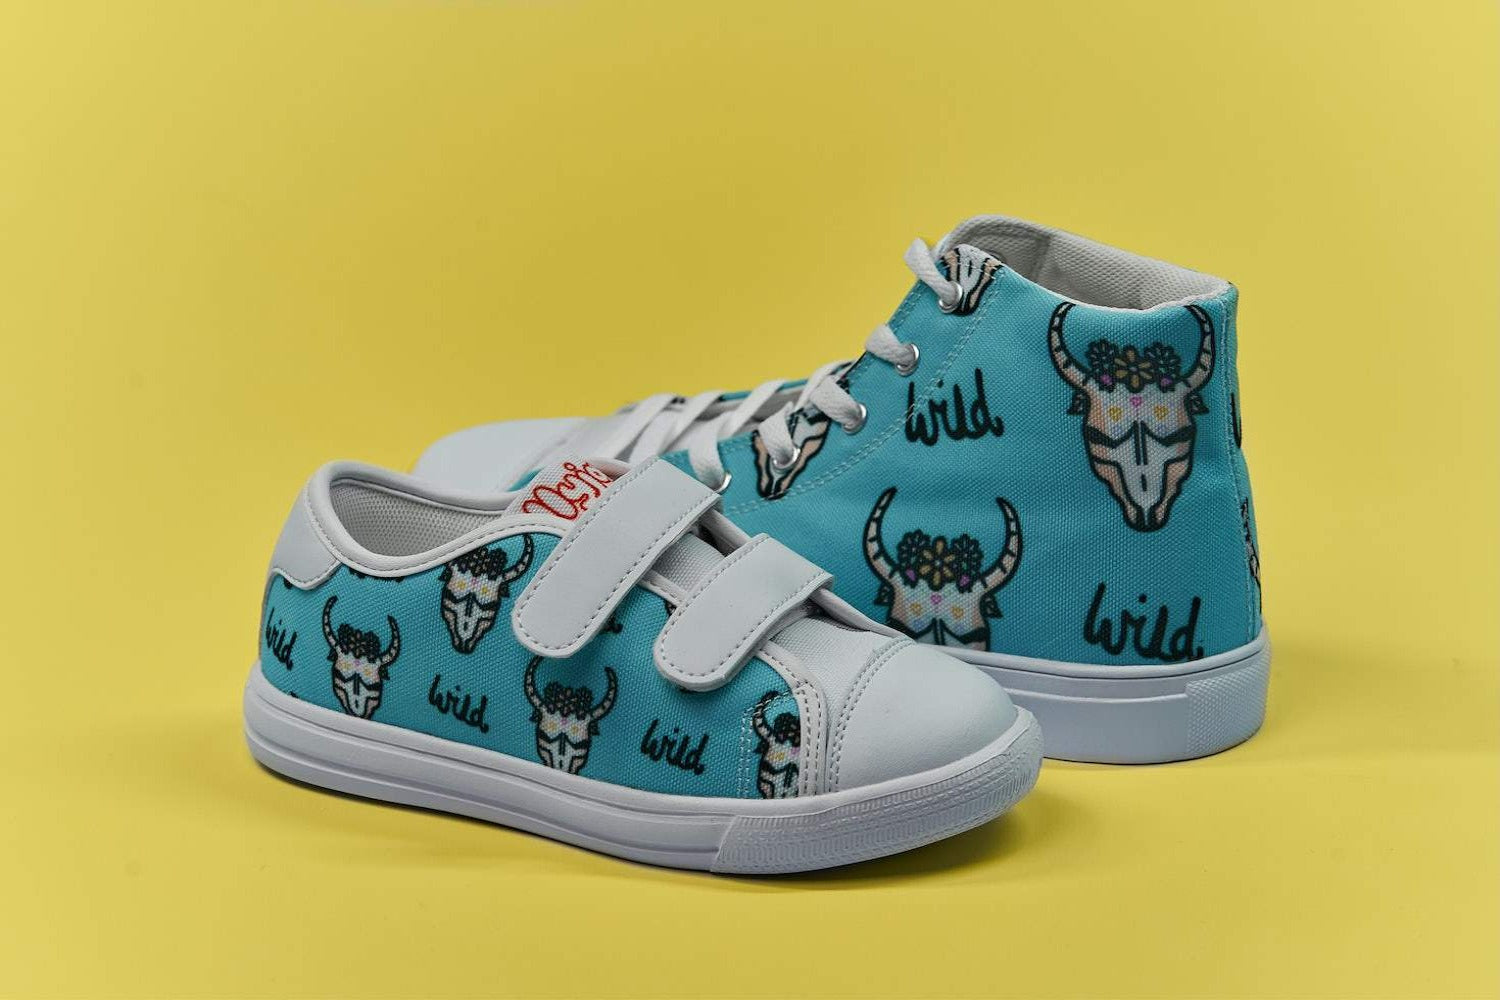 Jellyjaws. Wild - Mommy & Me Sneakers set